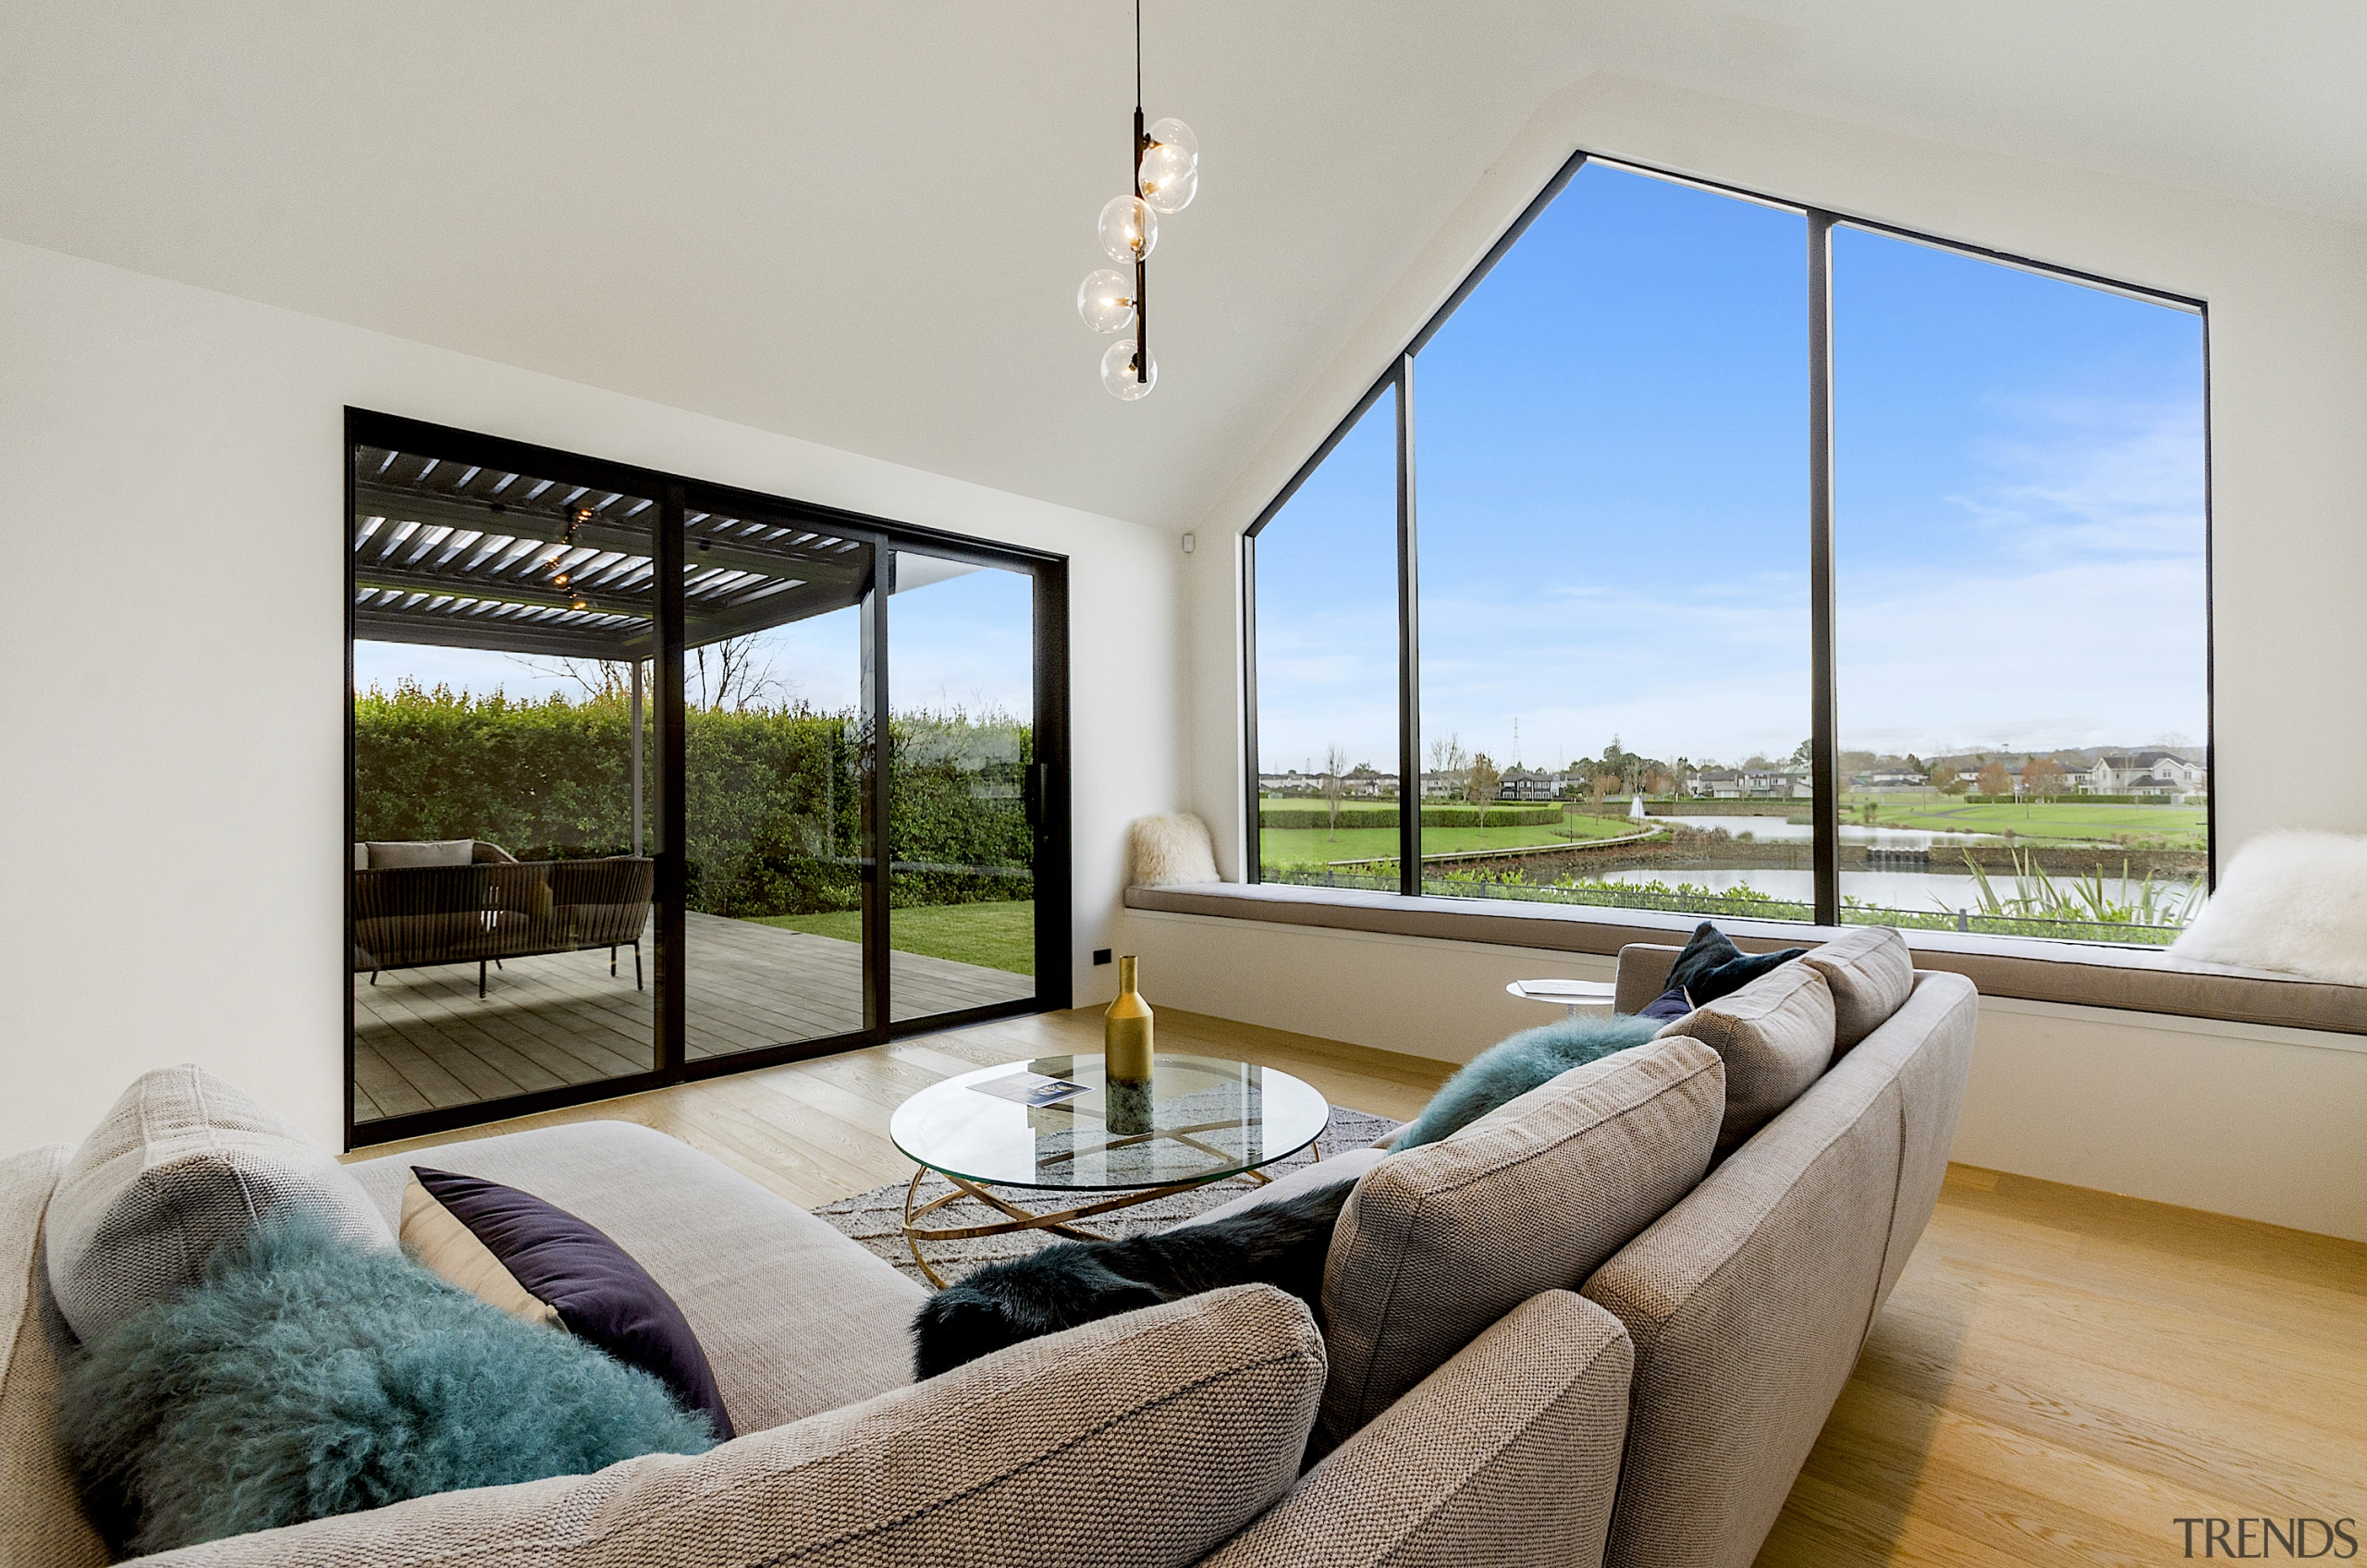 The main living area connects with the scenic gray